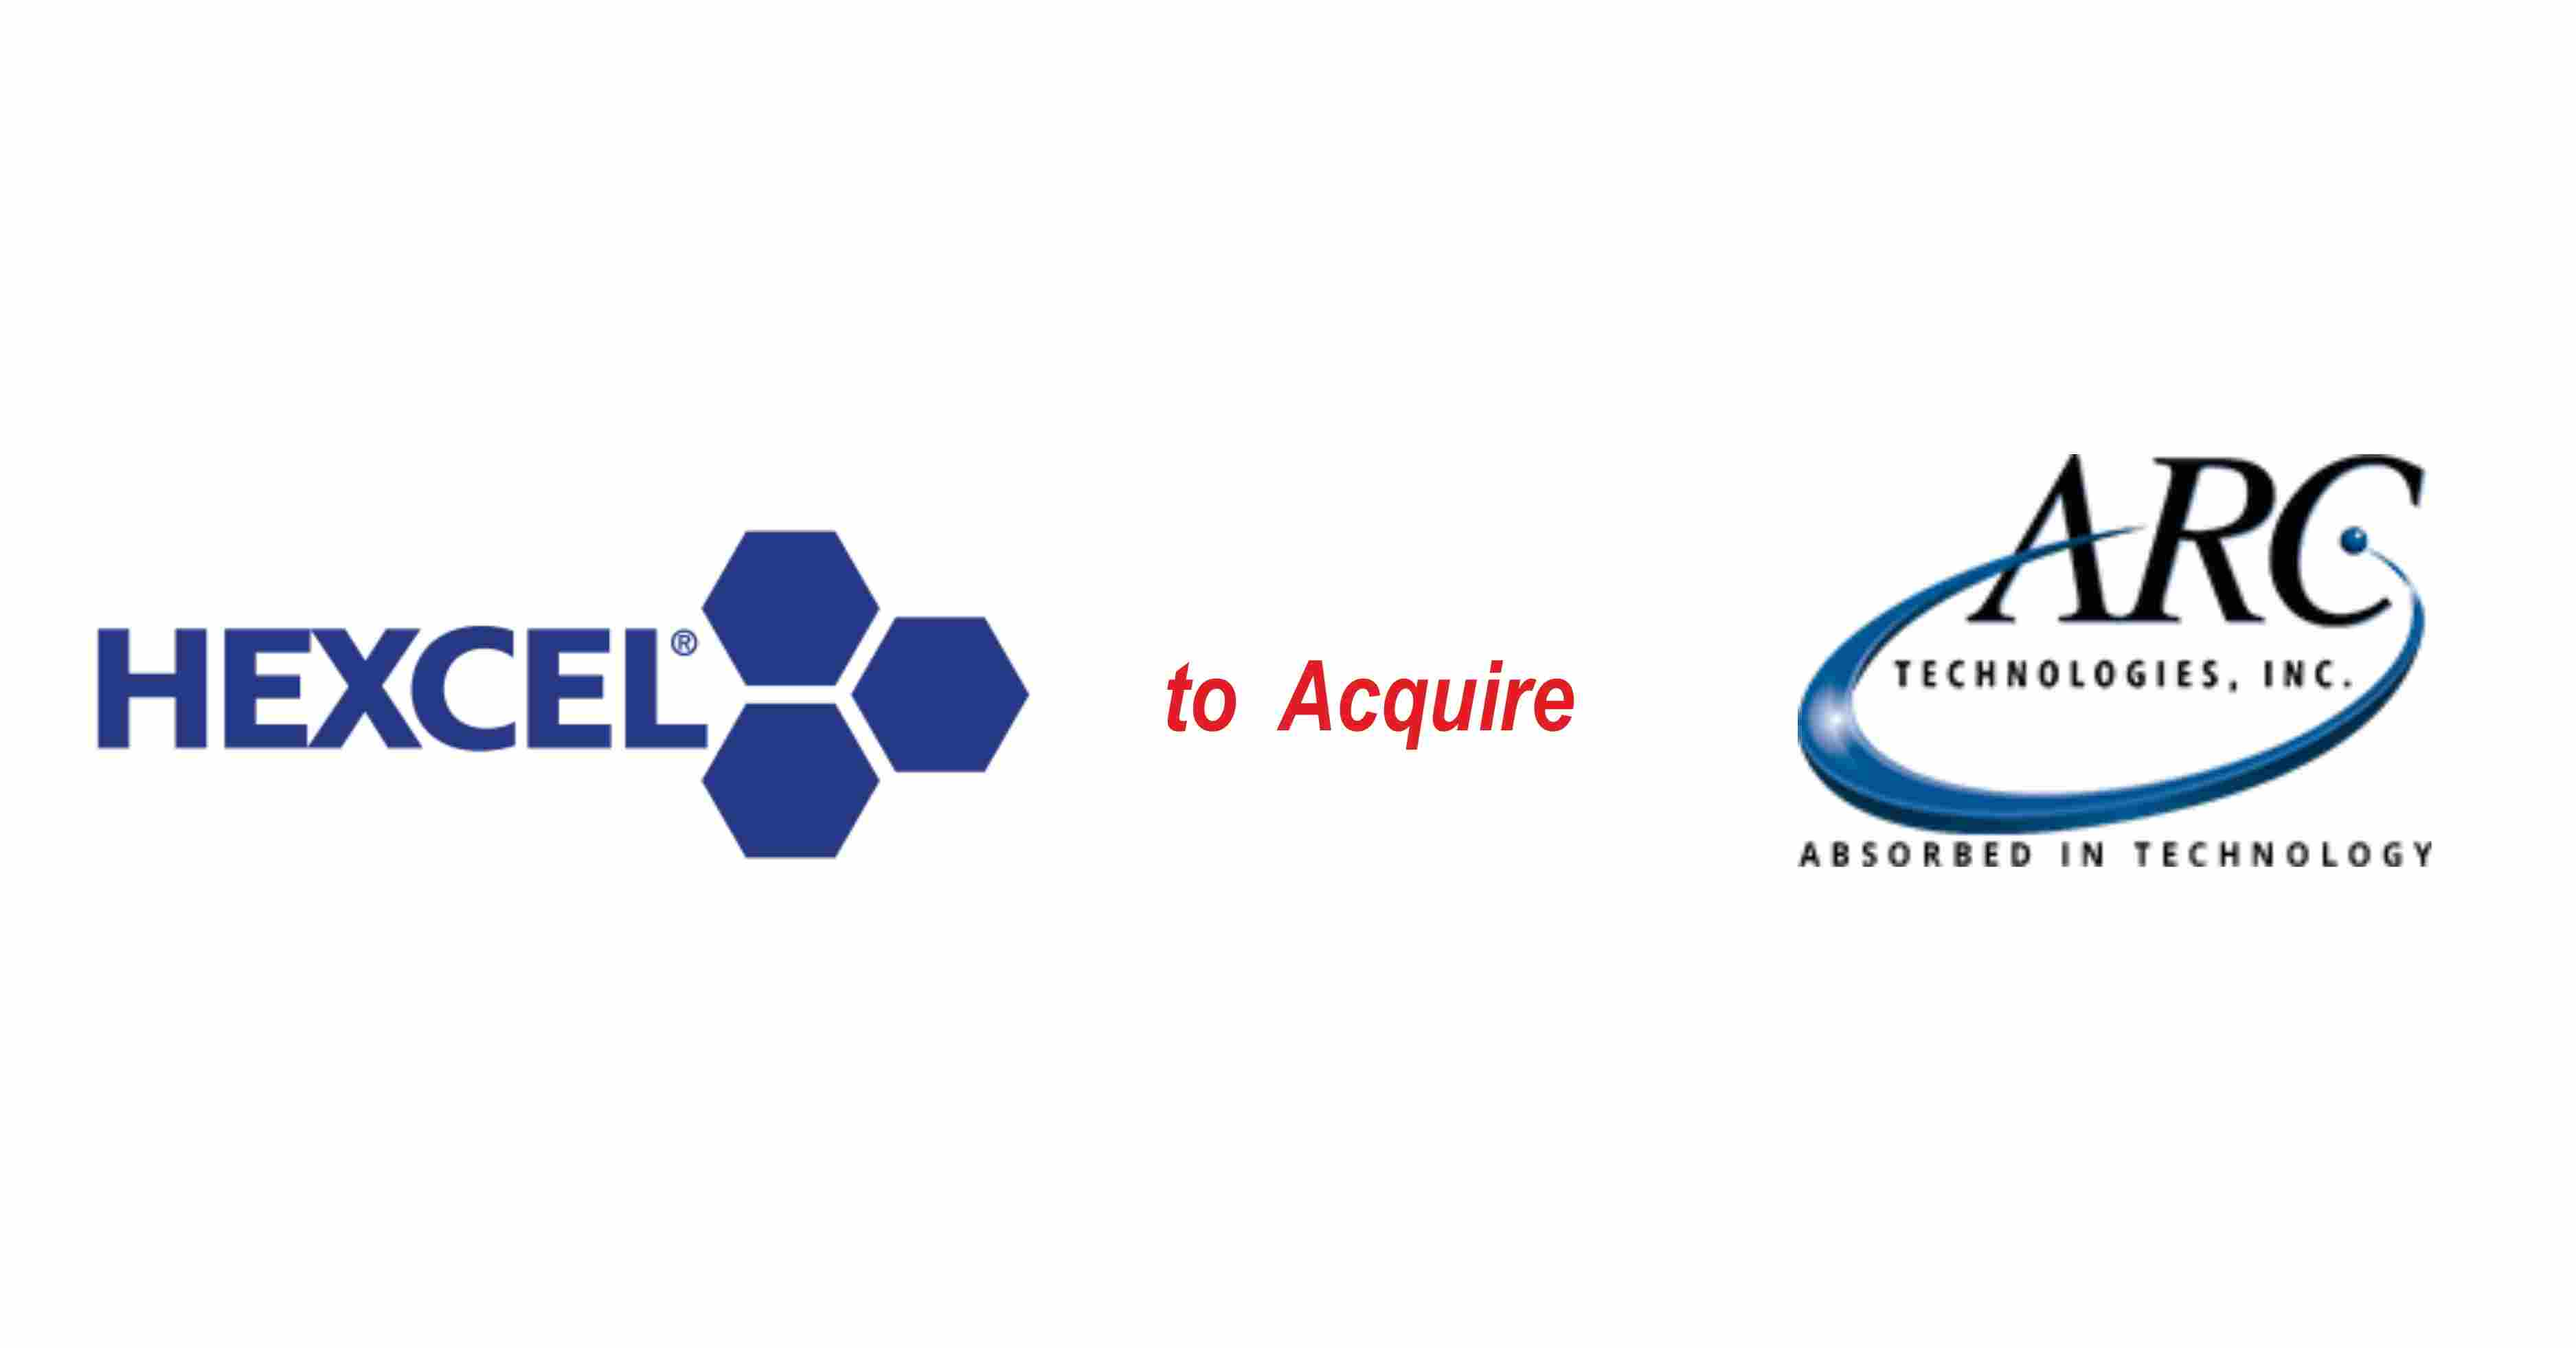 Hexcel to Acquire Military RF Specialist ARC Technologies